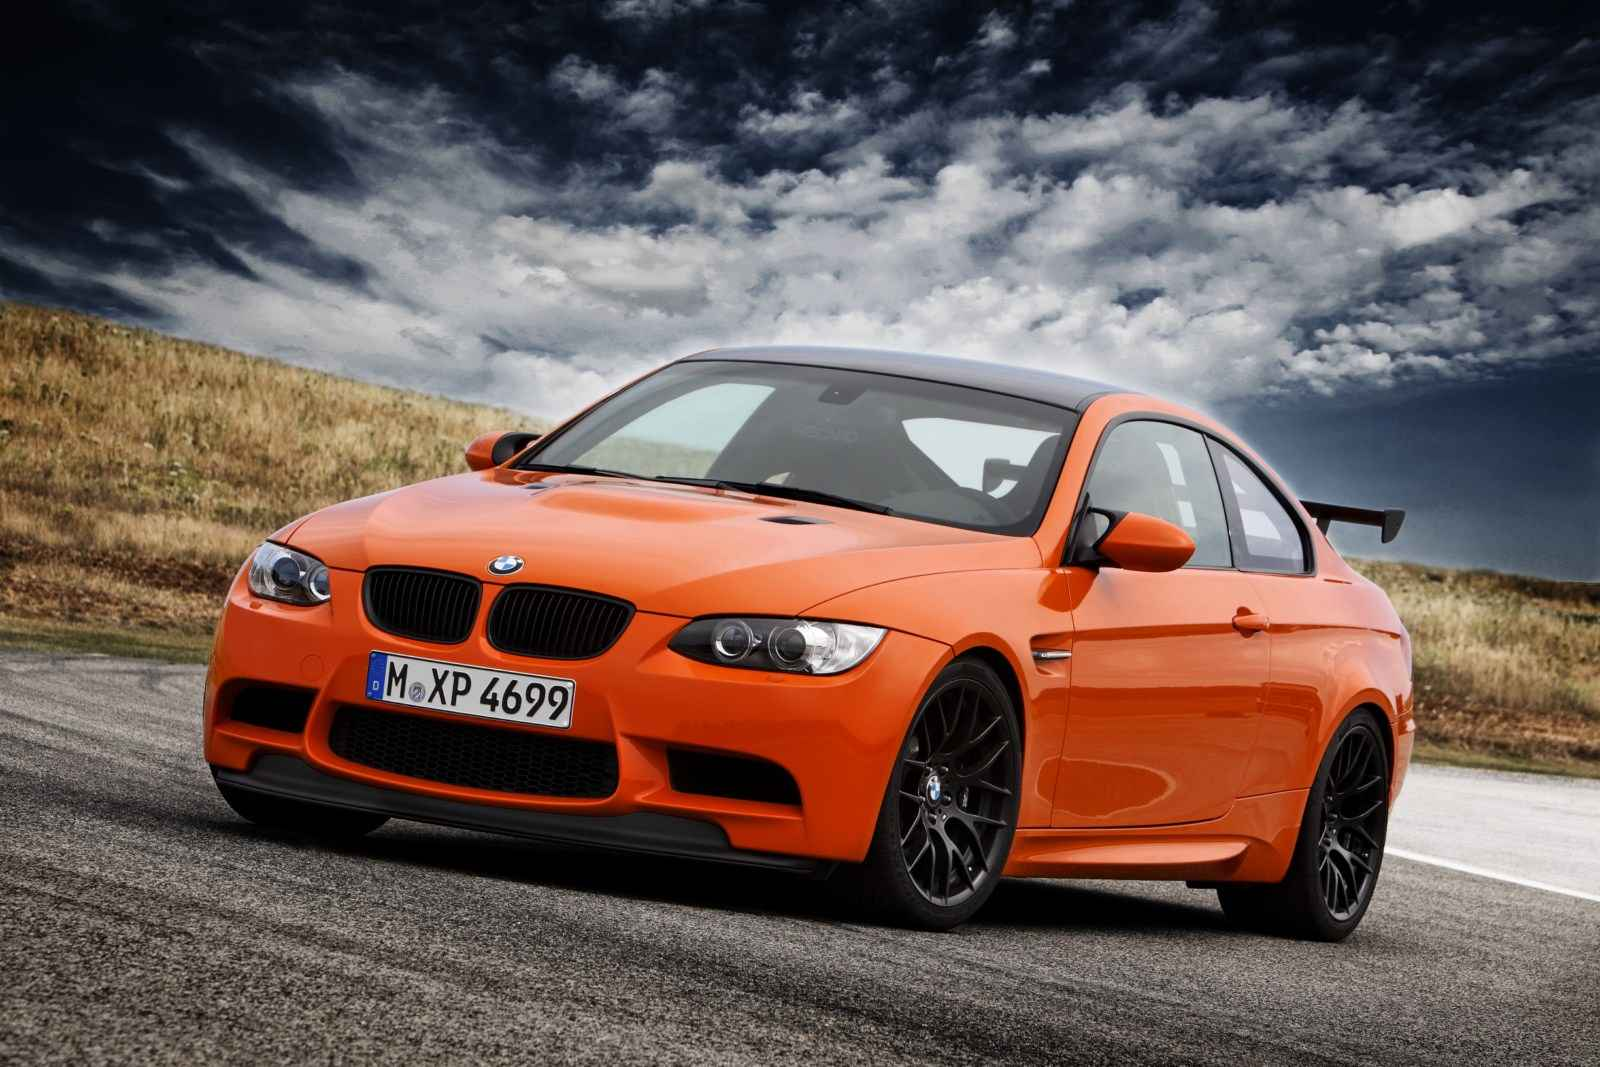 In a previous interview Larry Koch former BMW M brand manager said 1600x1067